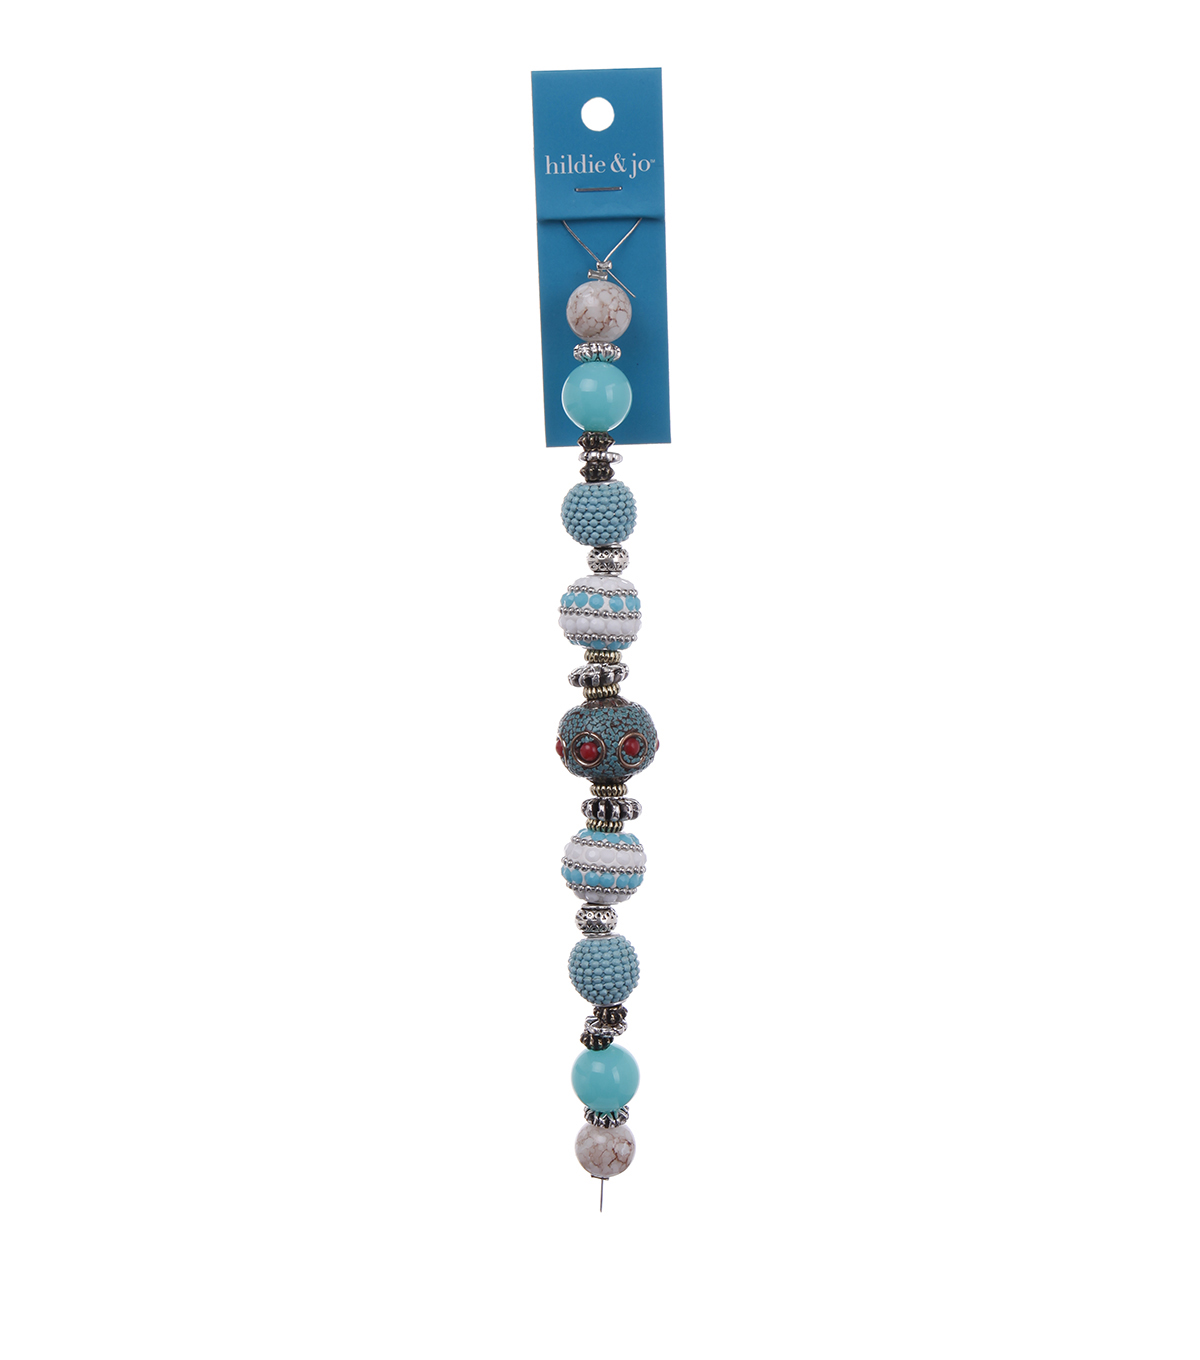 hildie & jo™ 7'' Strung Beads-Turquoise